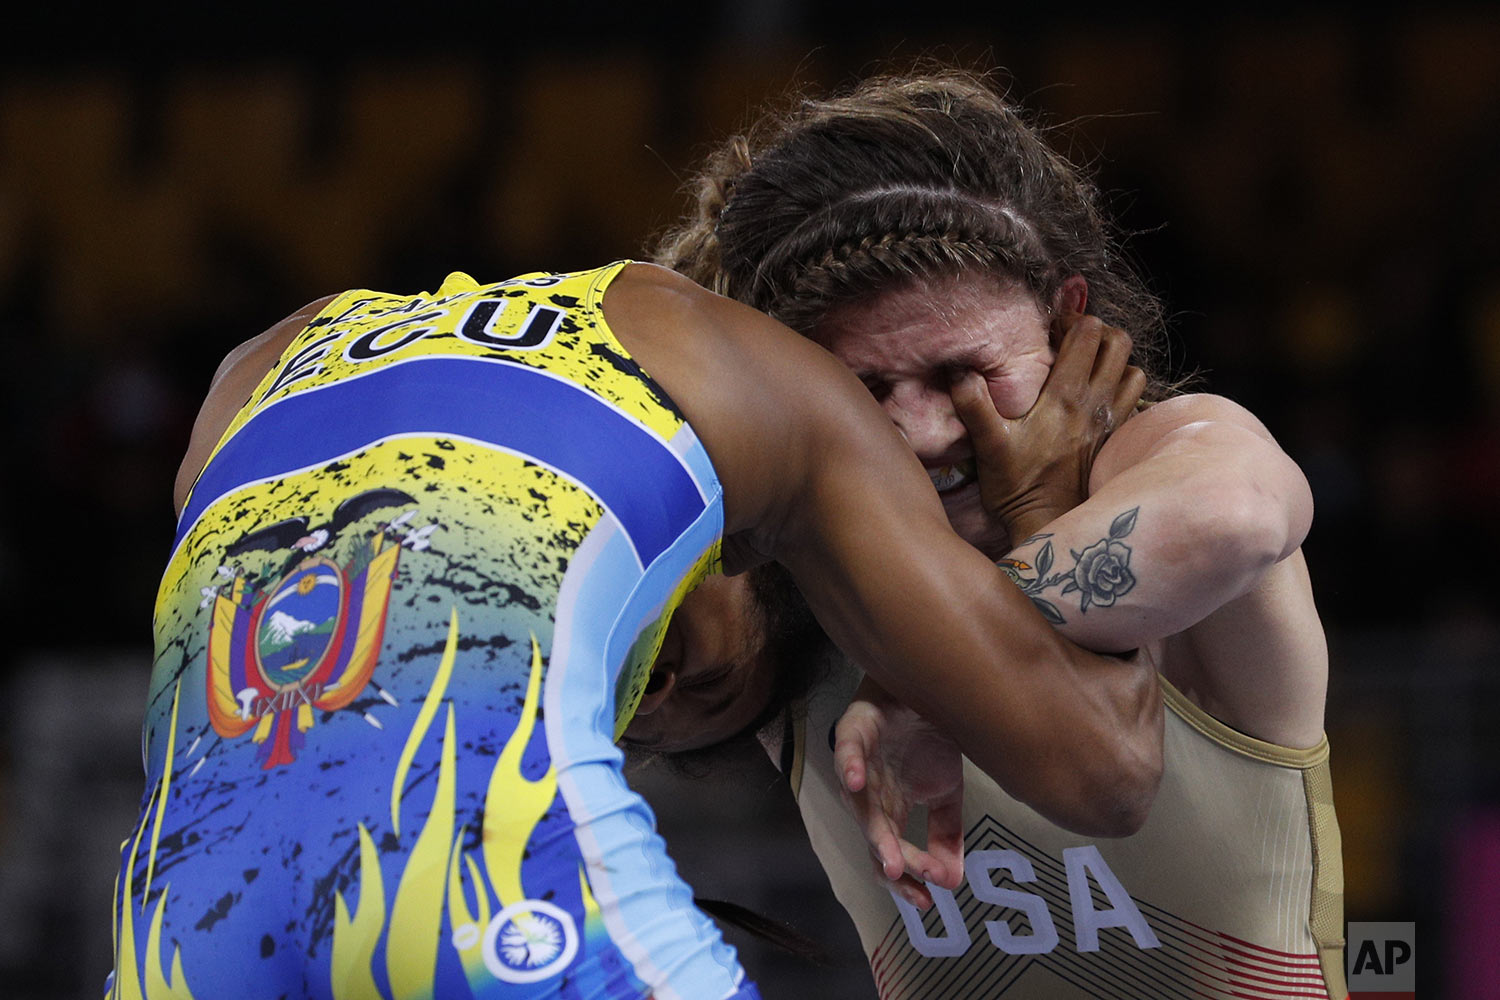 Jenna Burkert of the U.S. gets an eye gouge from Ecuador's Lissette Antes in their women's 57kg freestyle wrestling final bout at the Pan American Games in Lima, Peru, Thursday, Aug. 8, 2019. Antes defeated Burkert to win gold. (AP Photo/Rebecca Blackwell)